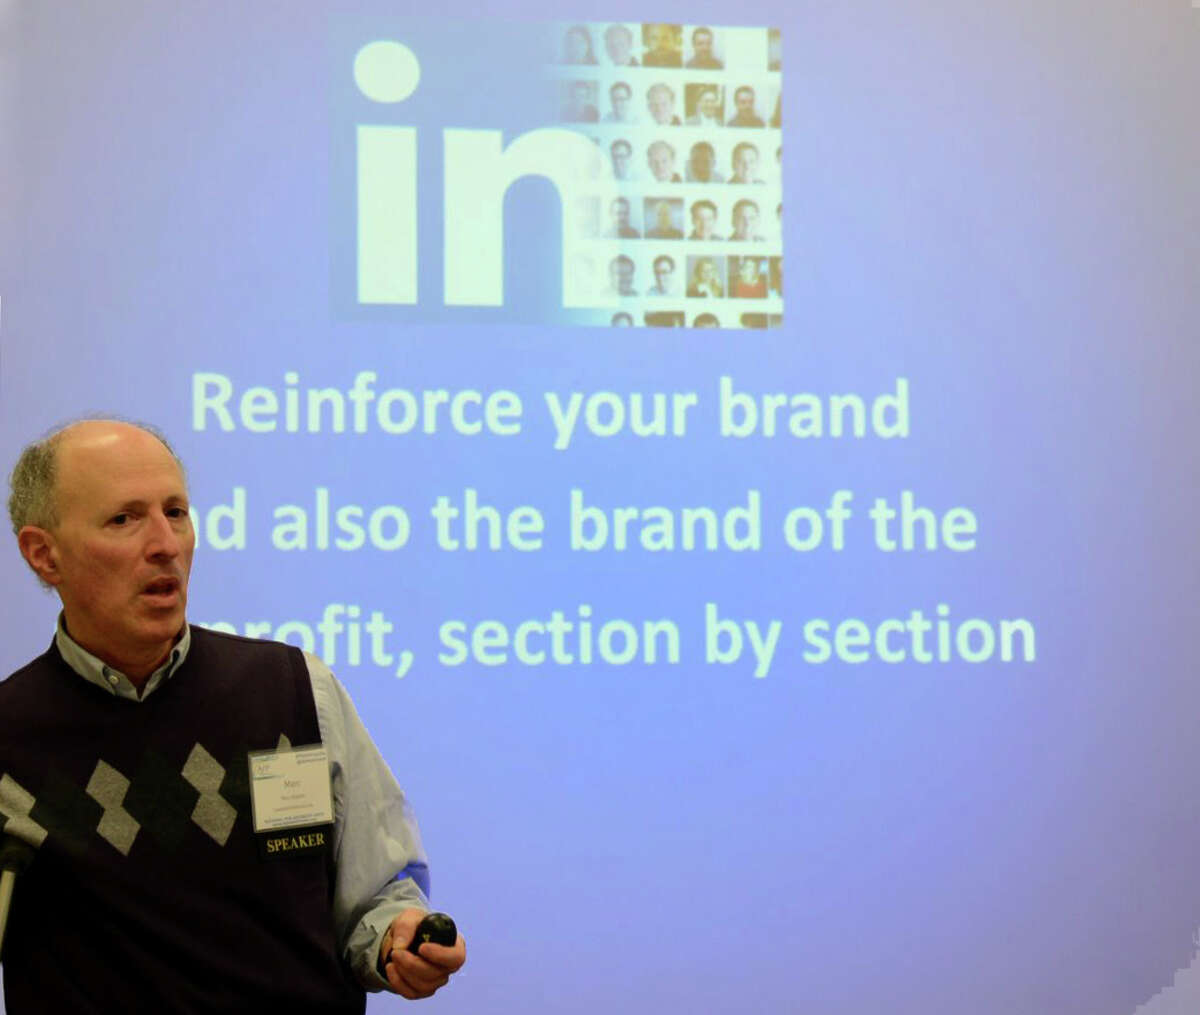 Marc Halpert, a LinkedIn trainer and speaker in Fairfield, is among the new businesses that have popped up to help people and companies find jobs or more work through social networking.